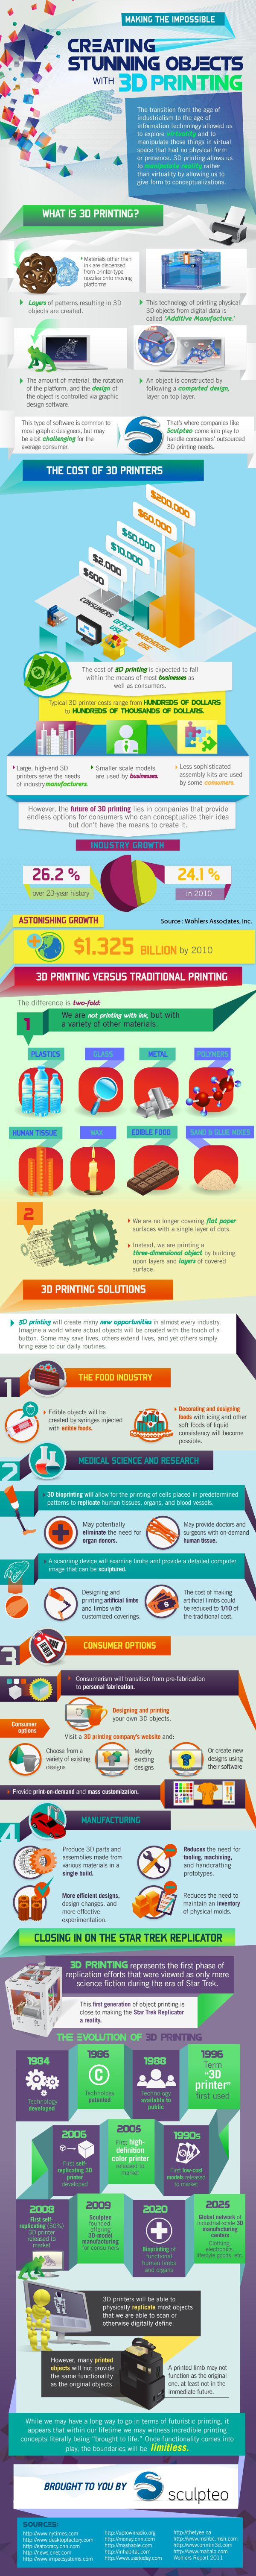 DIY MOVEMENT 3ders.org - Infographic: 3D Printing explained | 3D Printing news